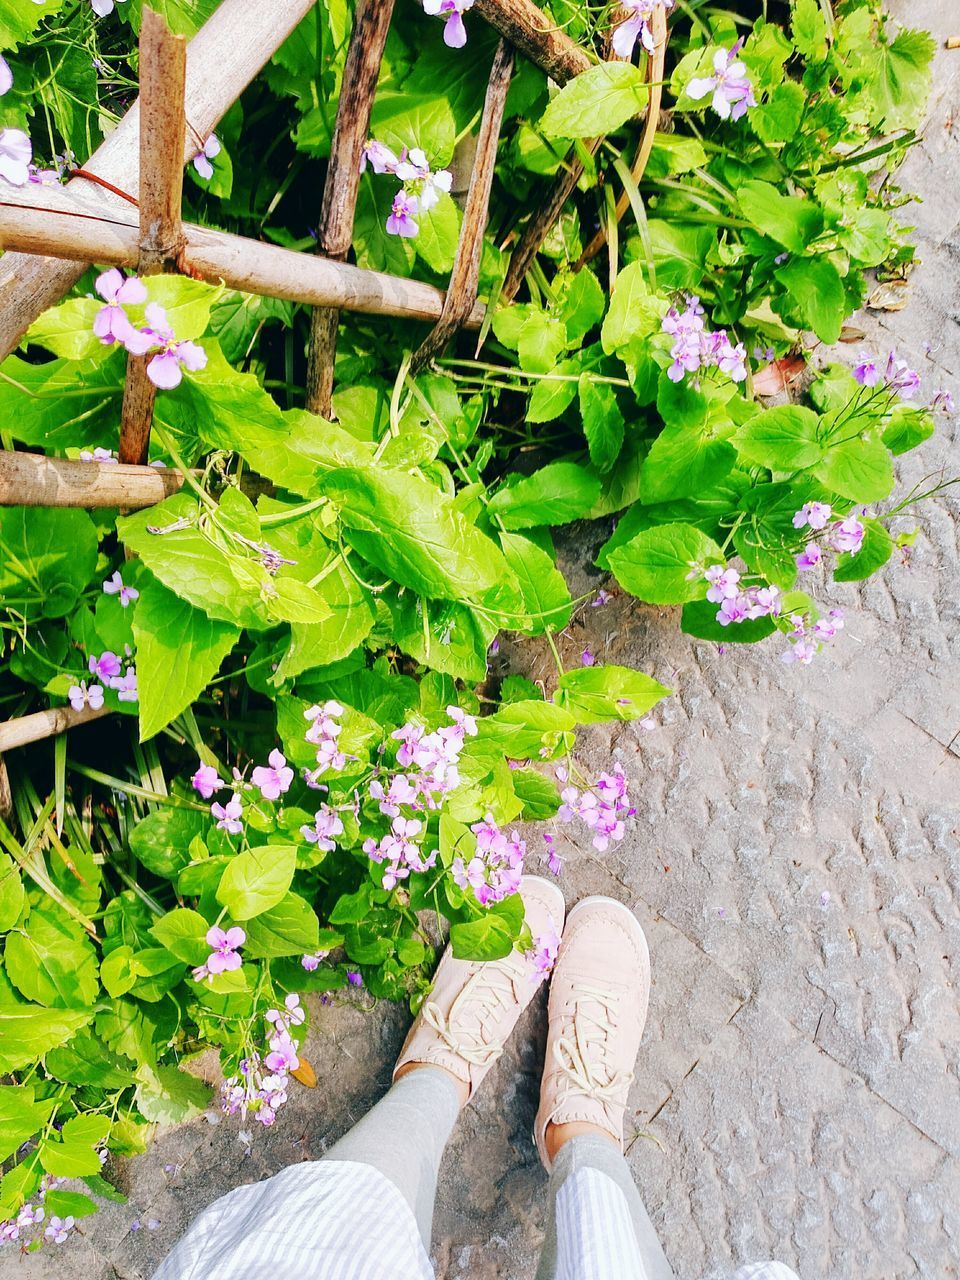 plant, high angle view, shoe, low section, growth, leaf, day, flower, outdoors, directly above, human leg, standing, green color, one person, nature, real people, fragility, flower head, beauty in nature, close-up, freshness, people